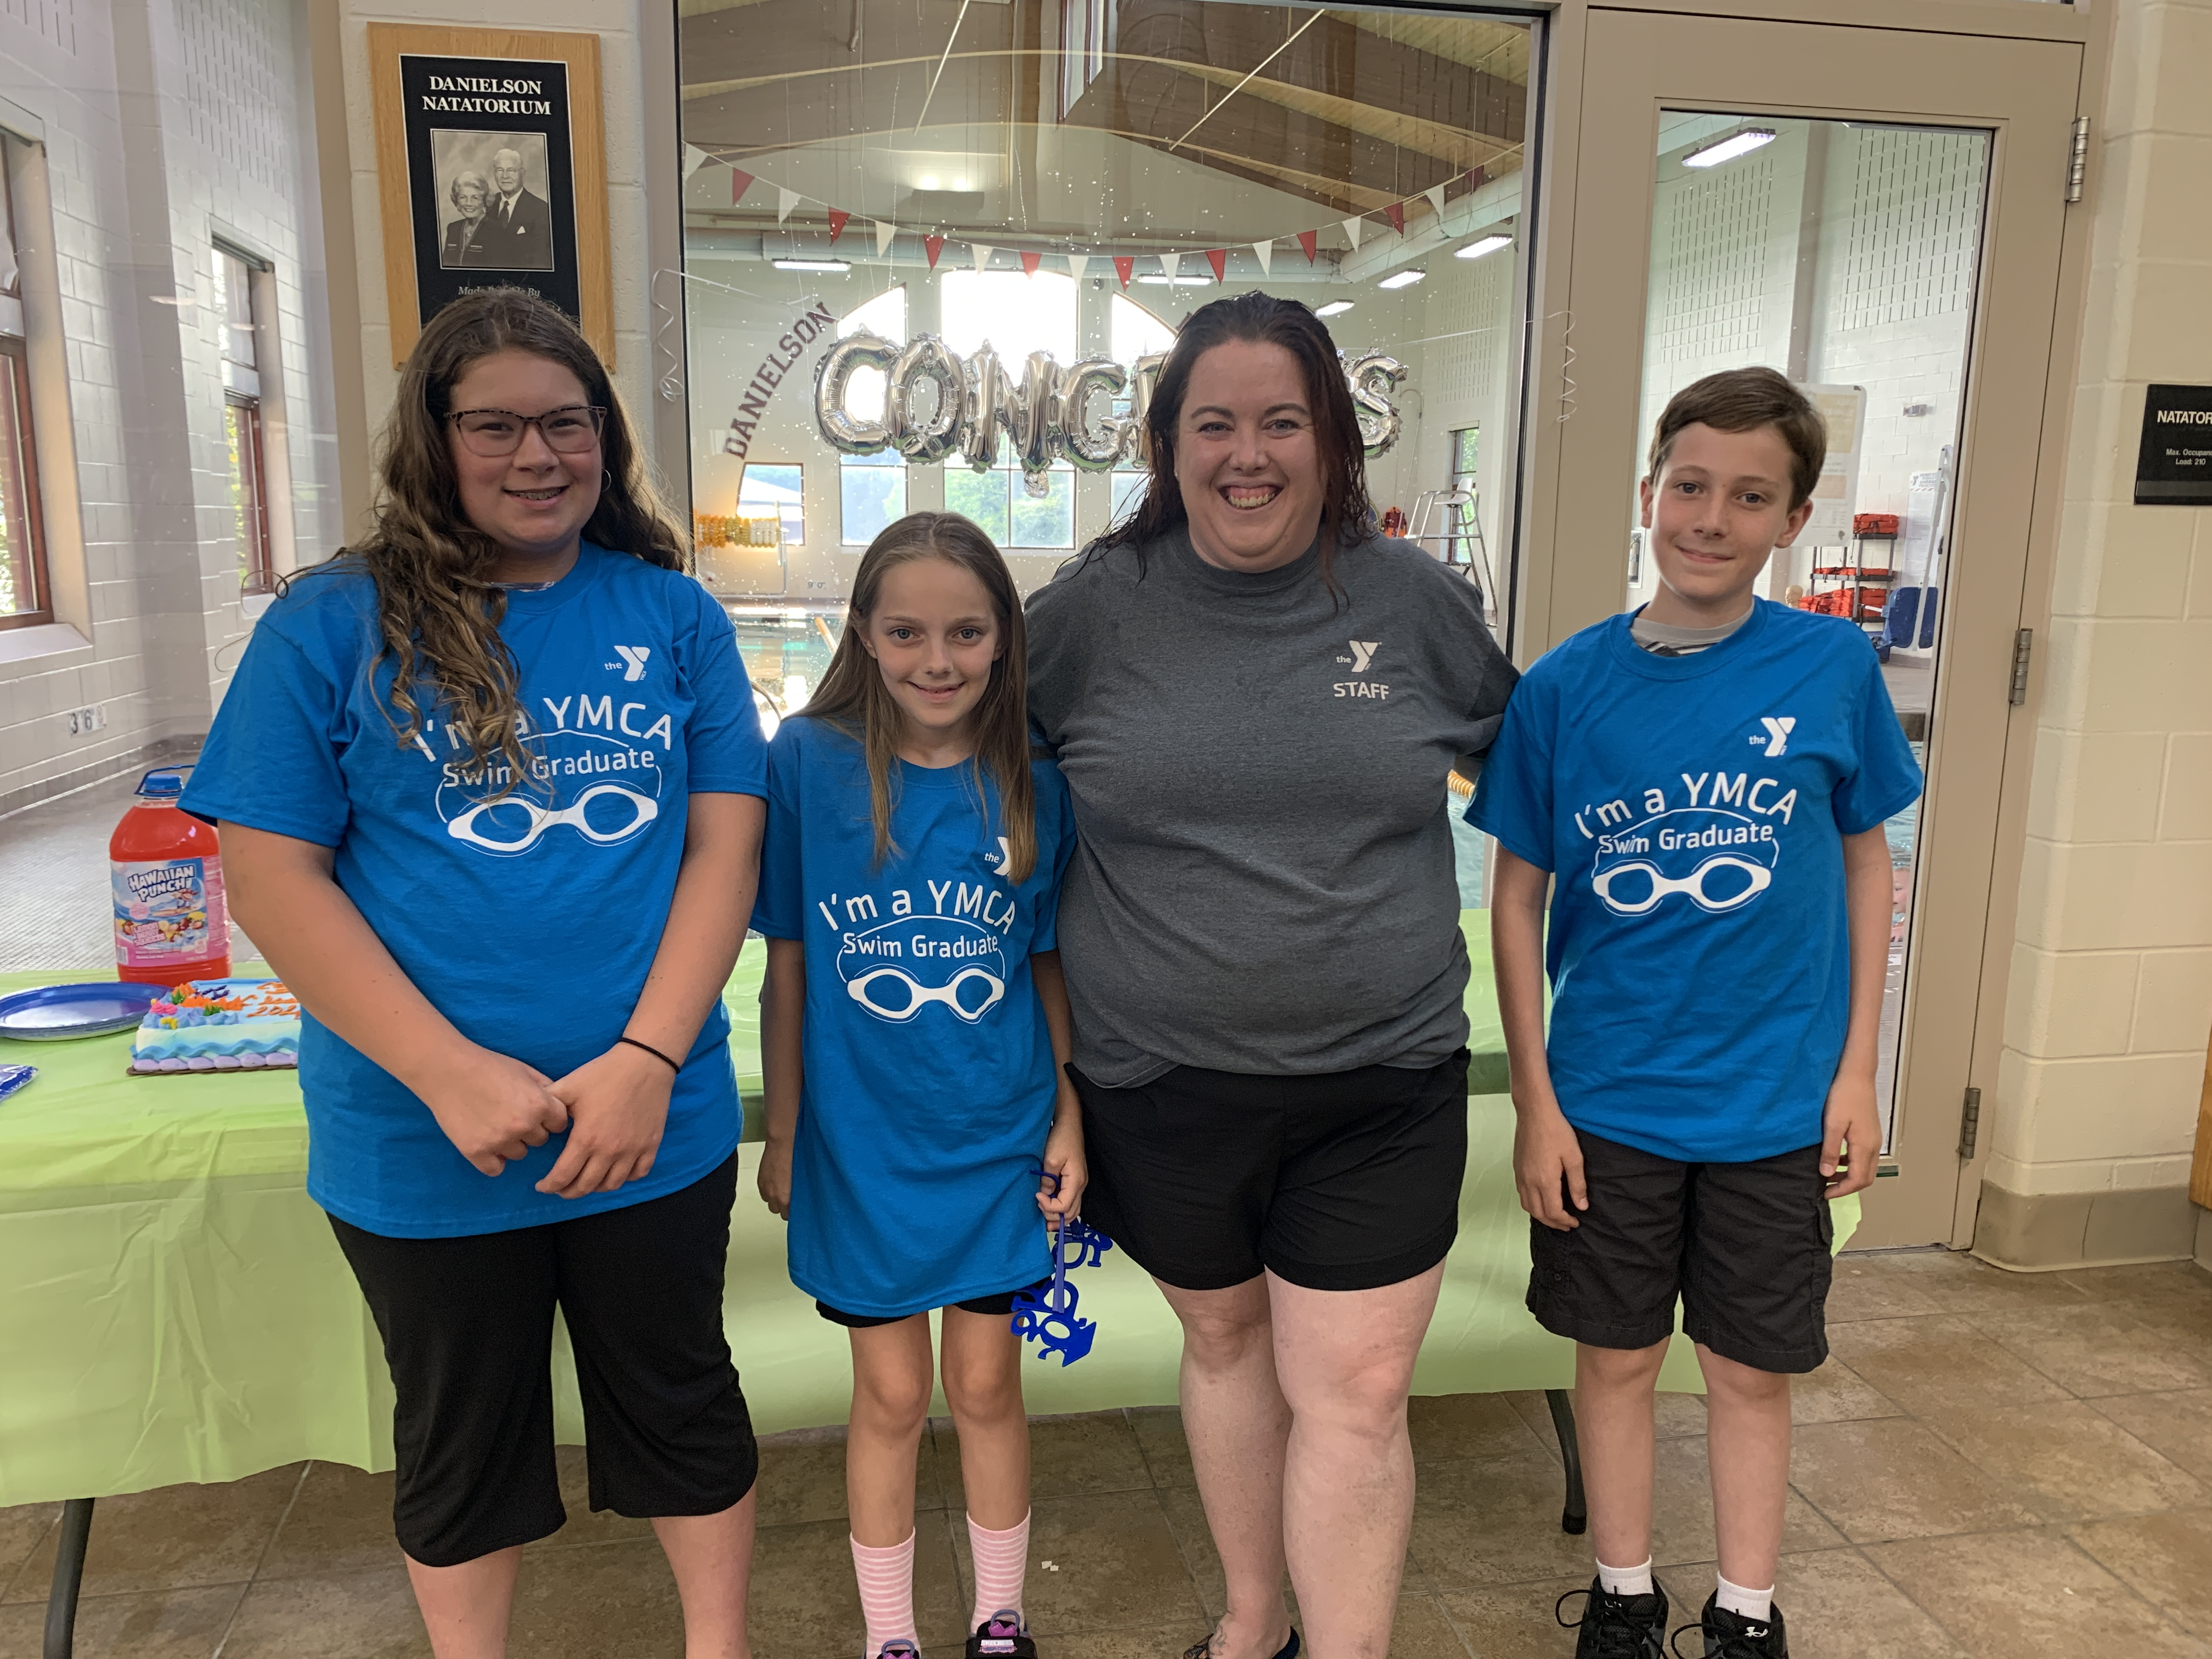 Maggie Williamson, Peter Mackie, and Saida Mackie each completed the lessons and evaluations needed to receive acknowledgment of their swimming accomplishments. Pictured with Natasha Hamilton.